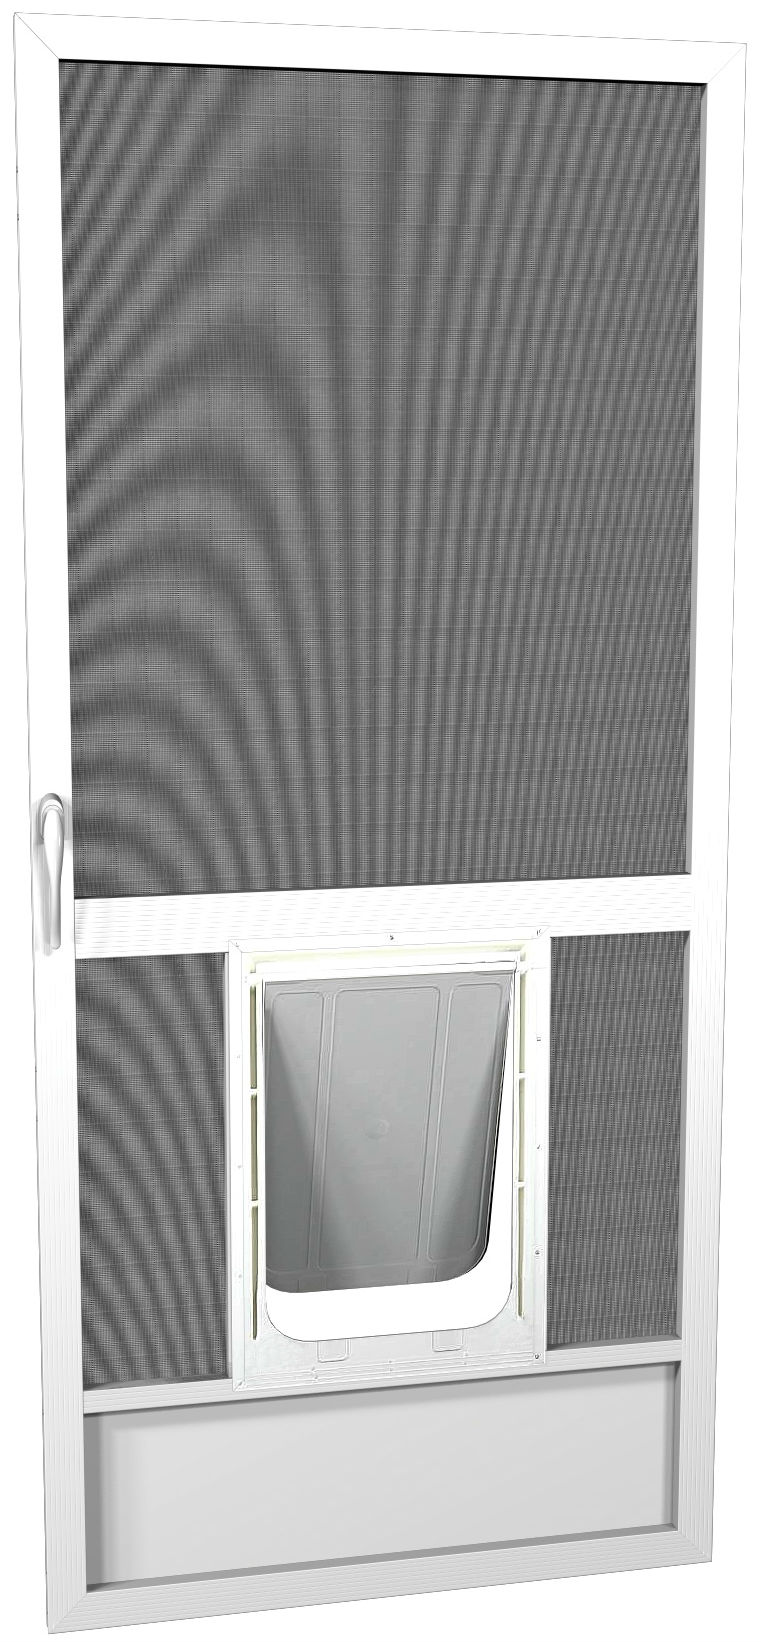 Which Is A Better Option For Homeowners Screen Door Or Pca Products